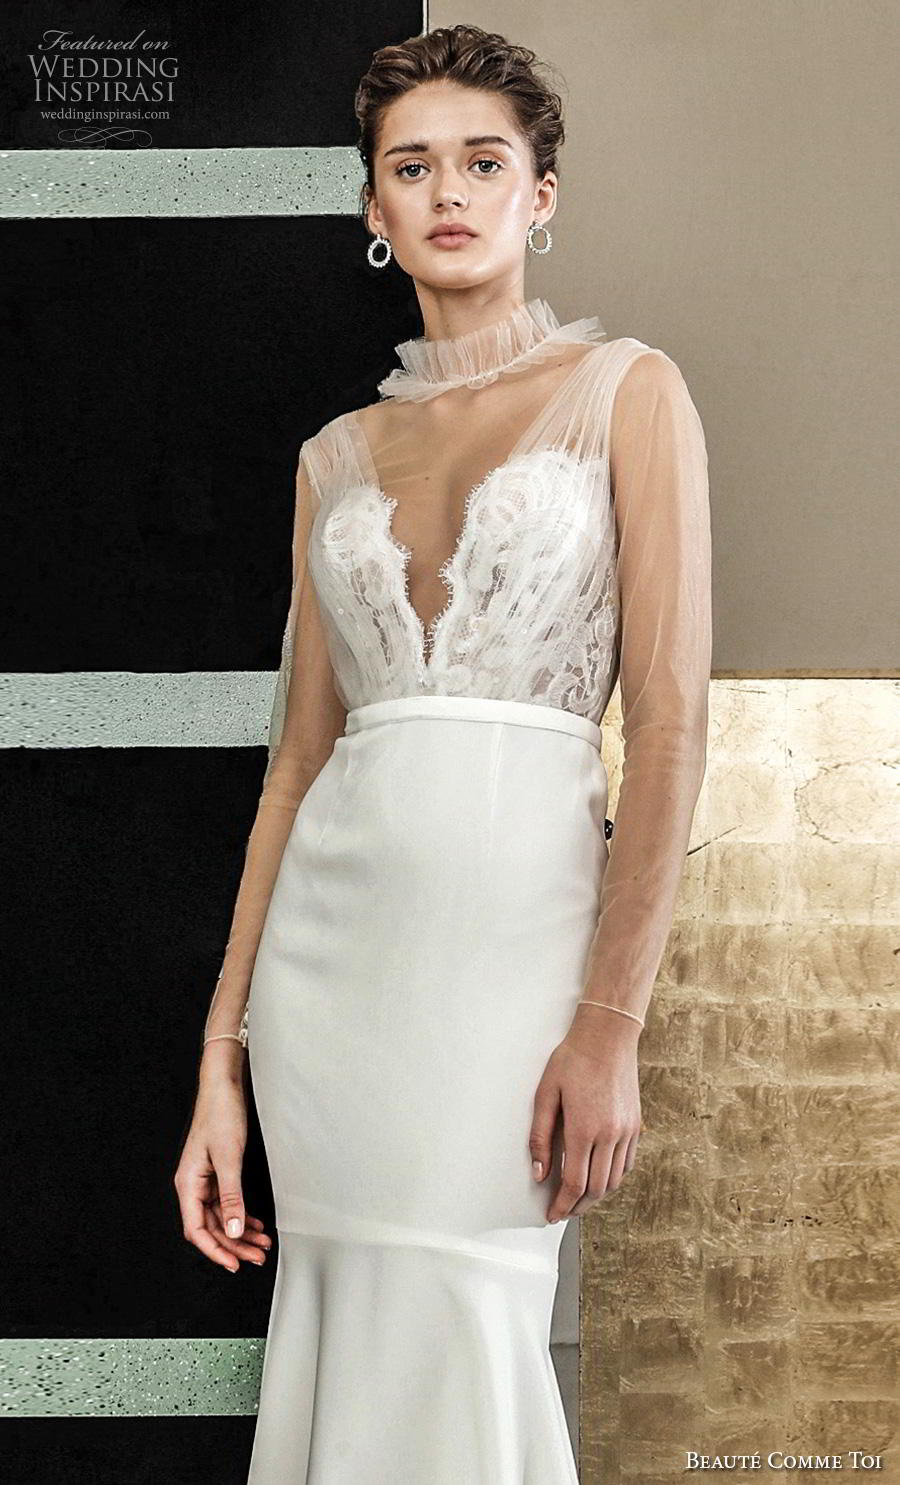 beaute comme toi 2019 bridal sheer long sleeves illusion high neck deep v neck heavily embellished bodice elegant fit and flare wedding dress sheer button back chapel train (helain) zv